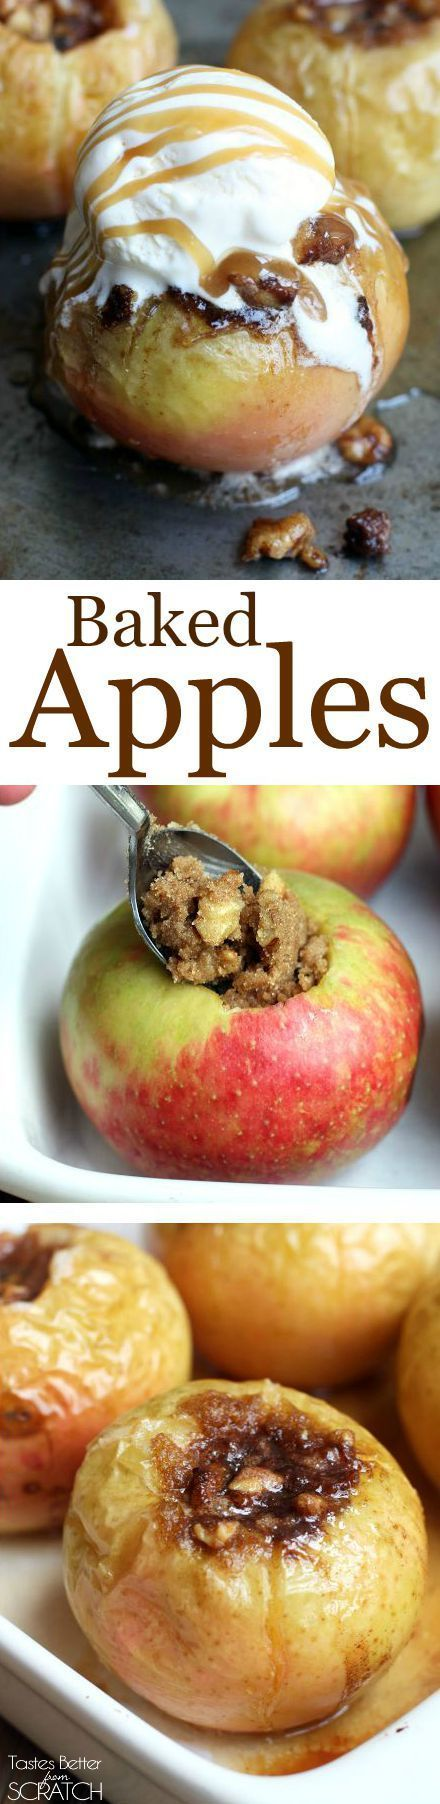 Crisp apples stuffed with a brown sugar, pecan mixture and baked until tender. One of my favorite healthy treats! Recipe from Tastes Better From Scratch(Baking Treats Healthy)